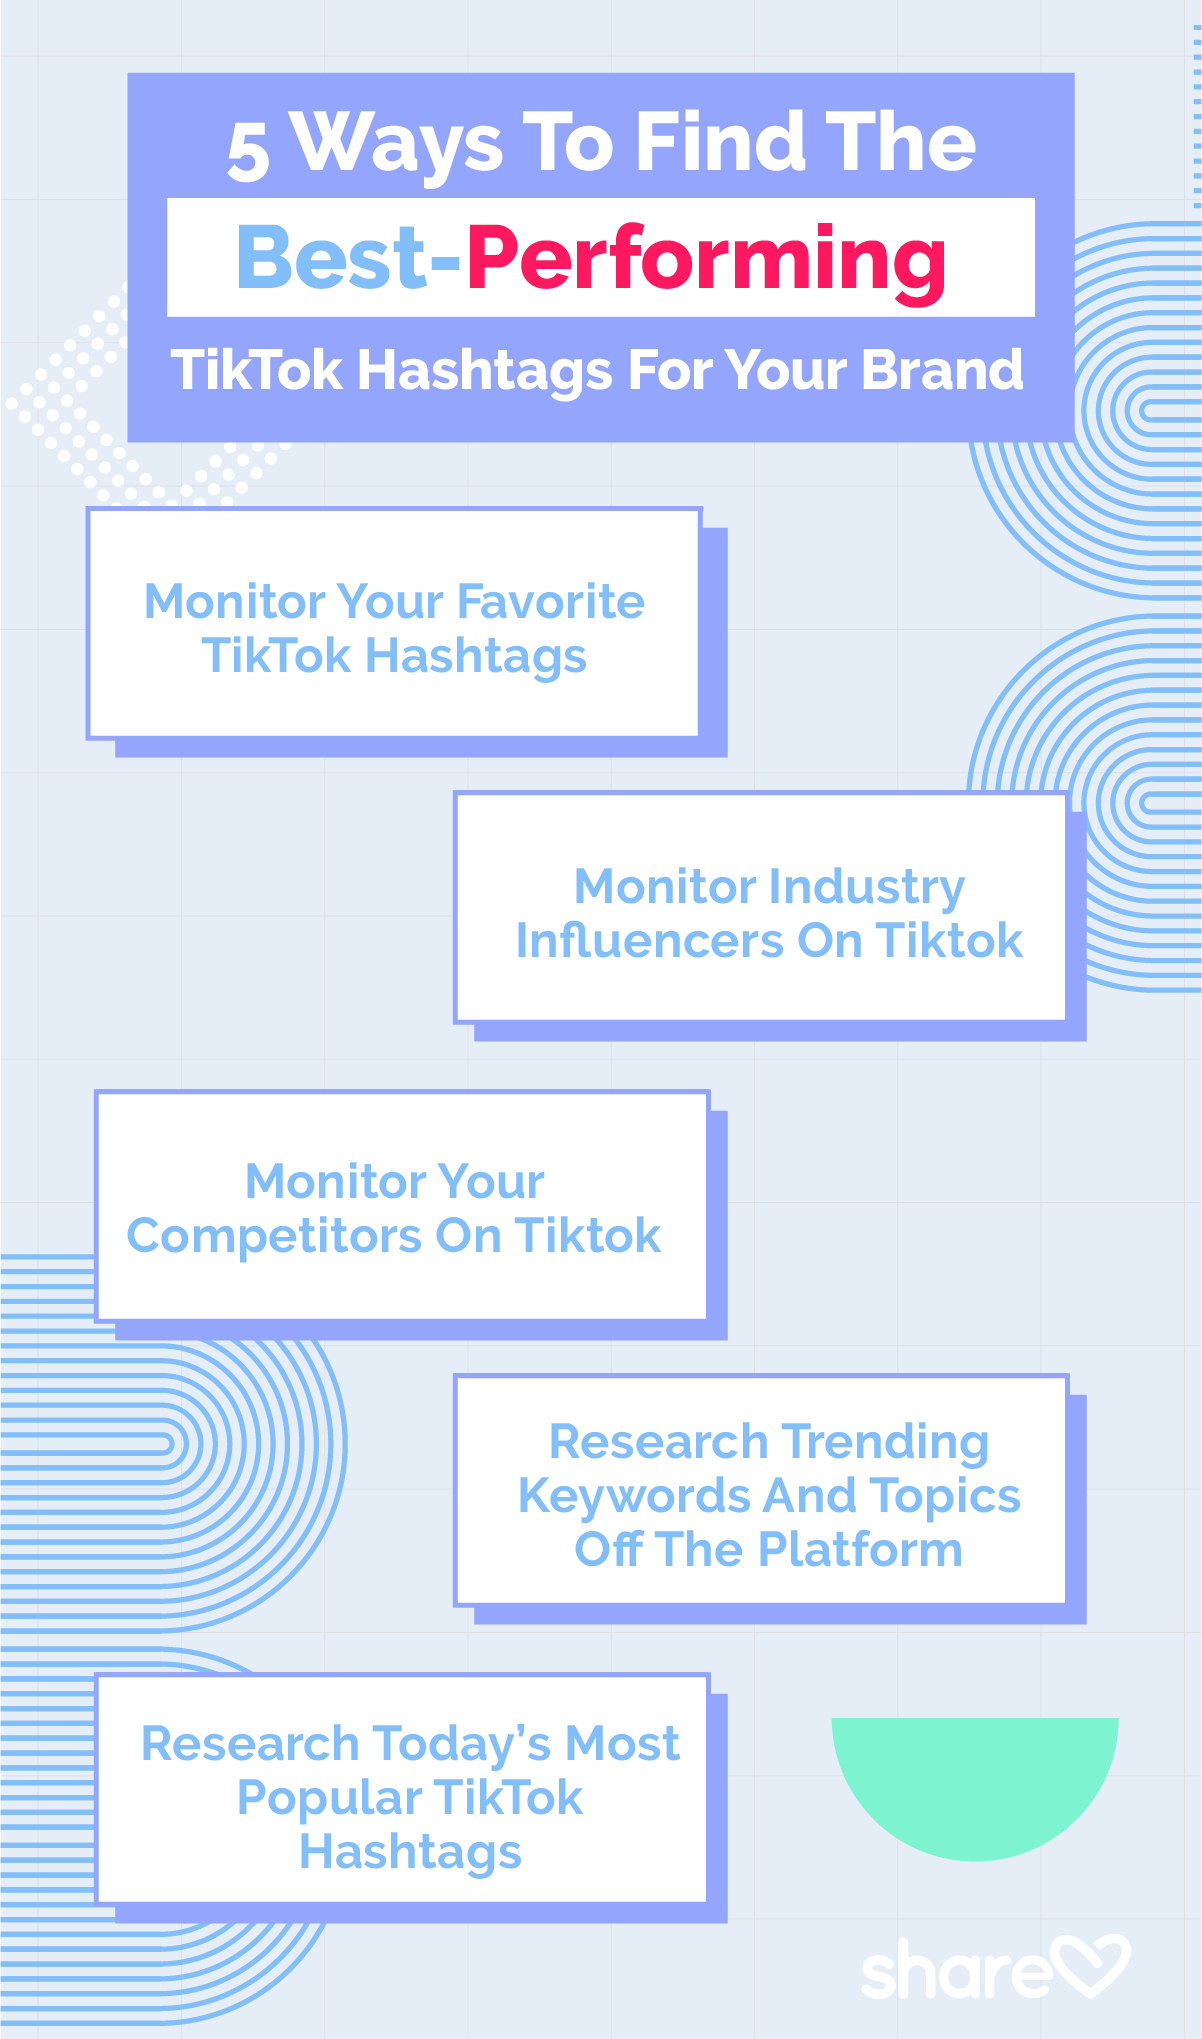 5 Ways To Find The Best-Performing TikTok Hashtags For Your Brand